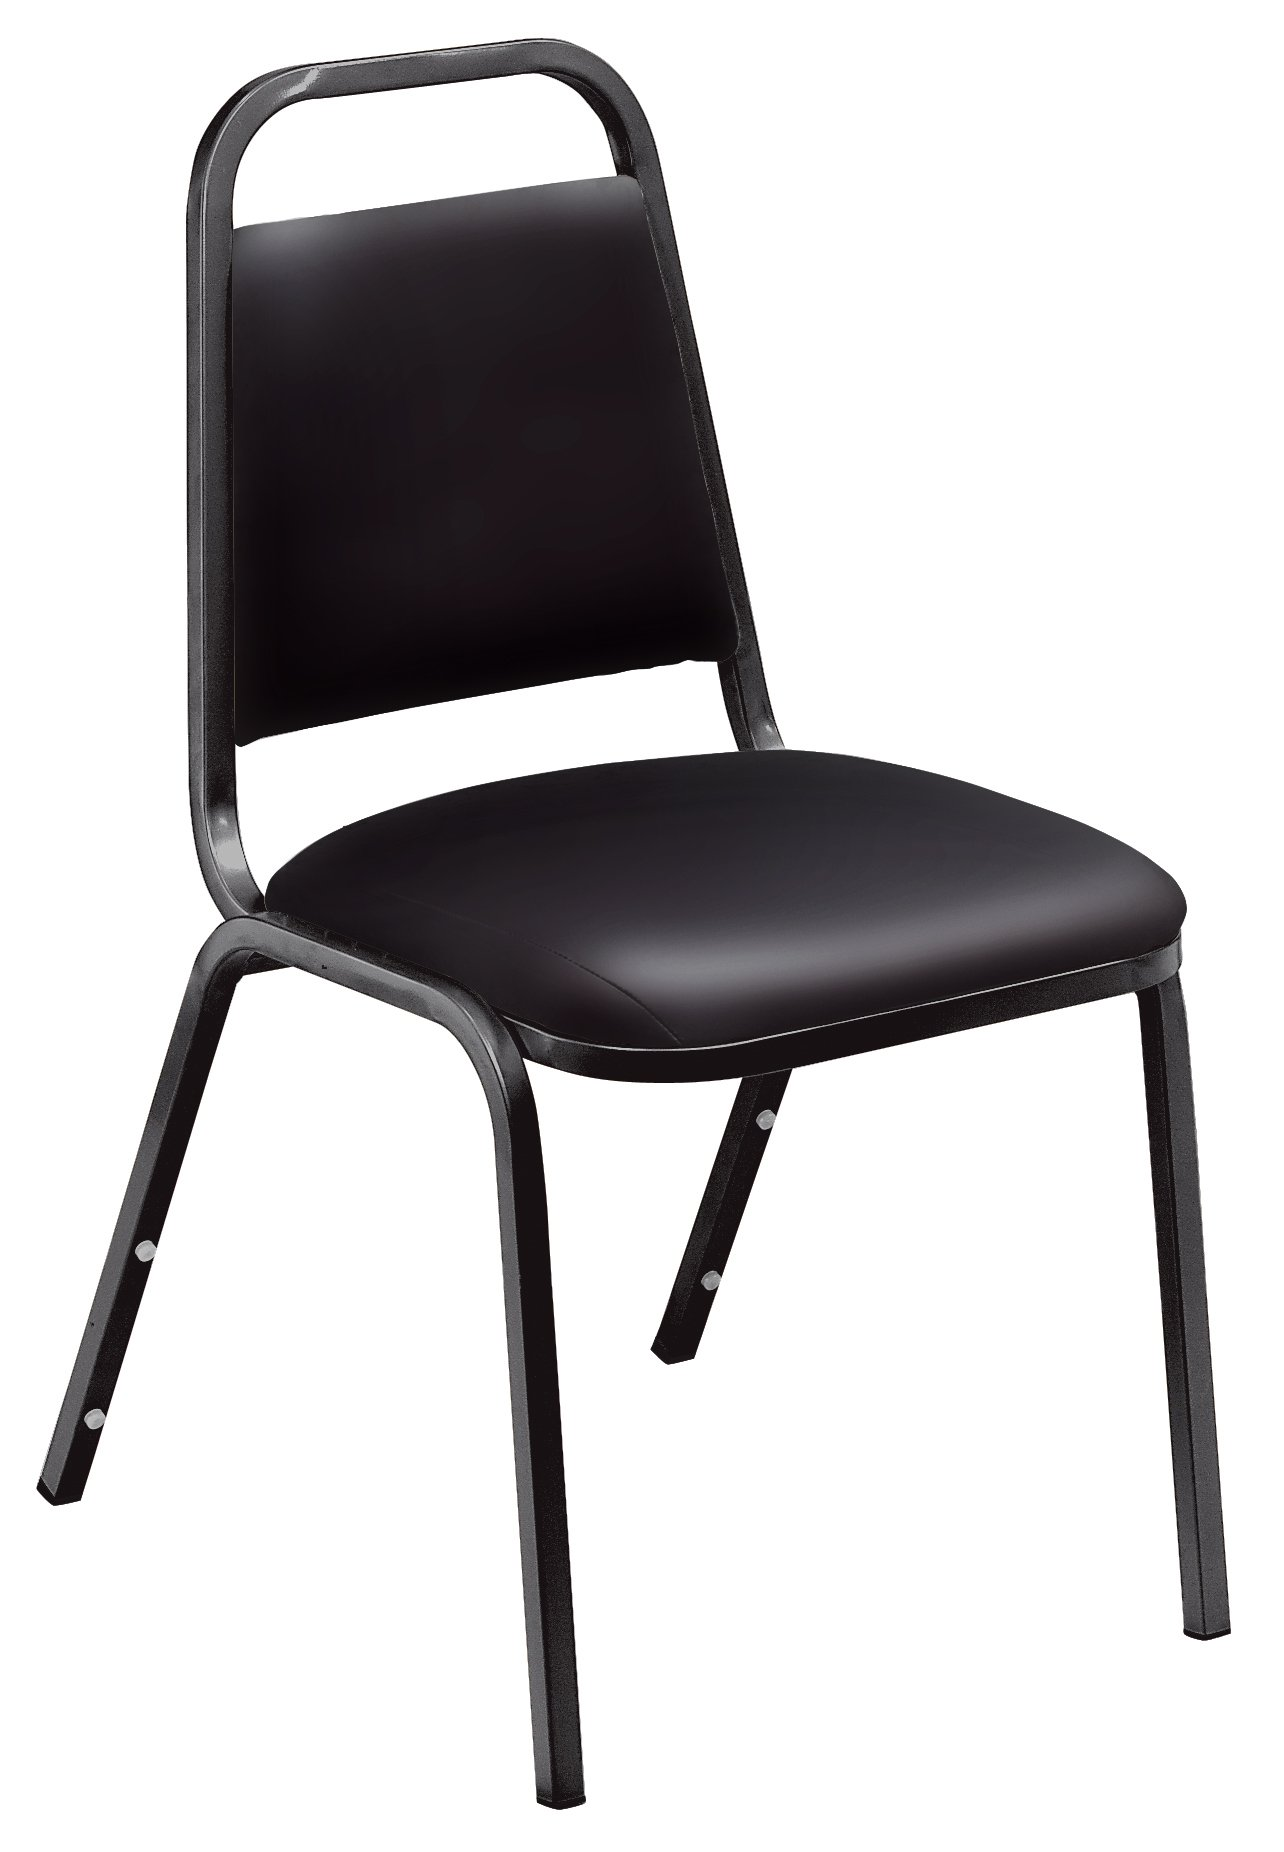 NPS 9110-B Vinyl Upholstered Standard Stack Chair, 300 lbs Weight Capacity, 16'' Length x 15-3/4'' Width x 33'' Height, Black